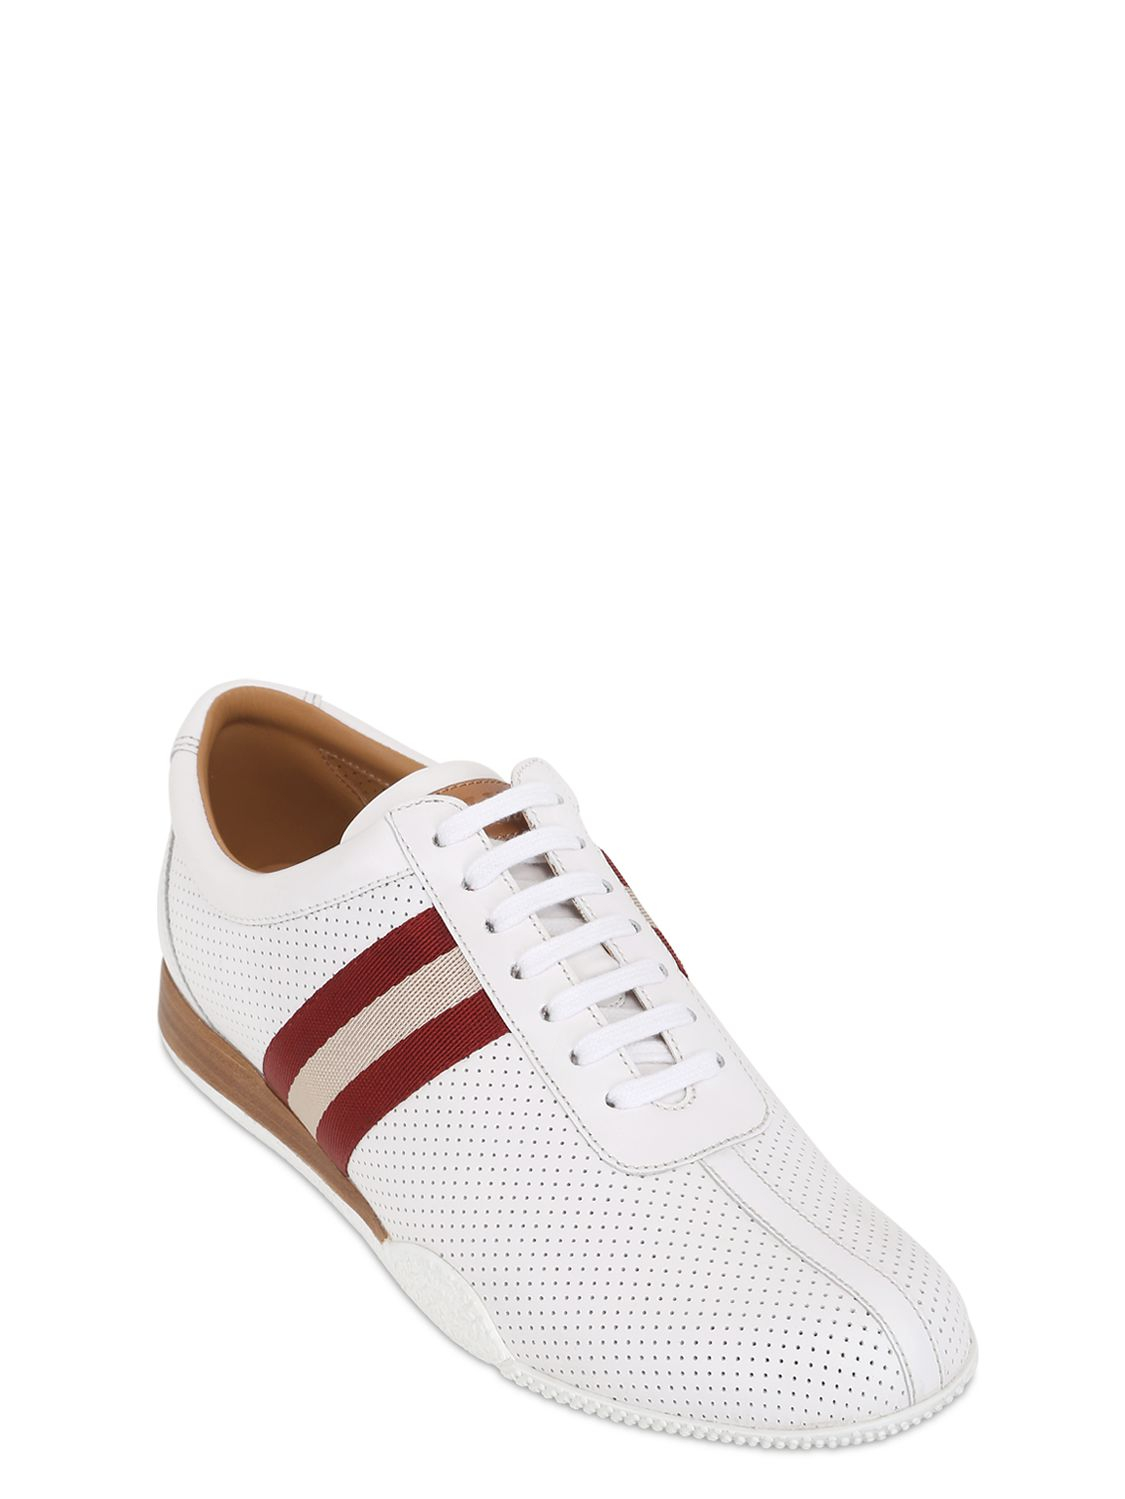 Bally Frenz Perforated Leather Sneakers In White For Men